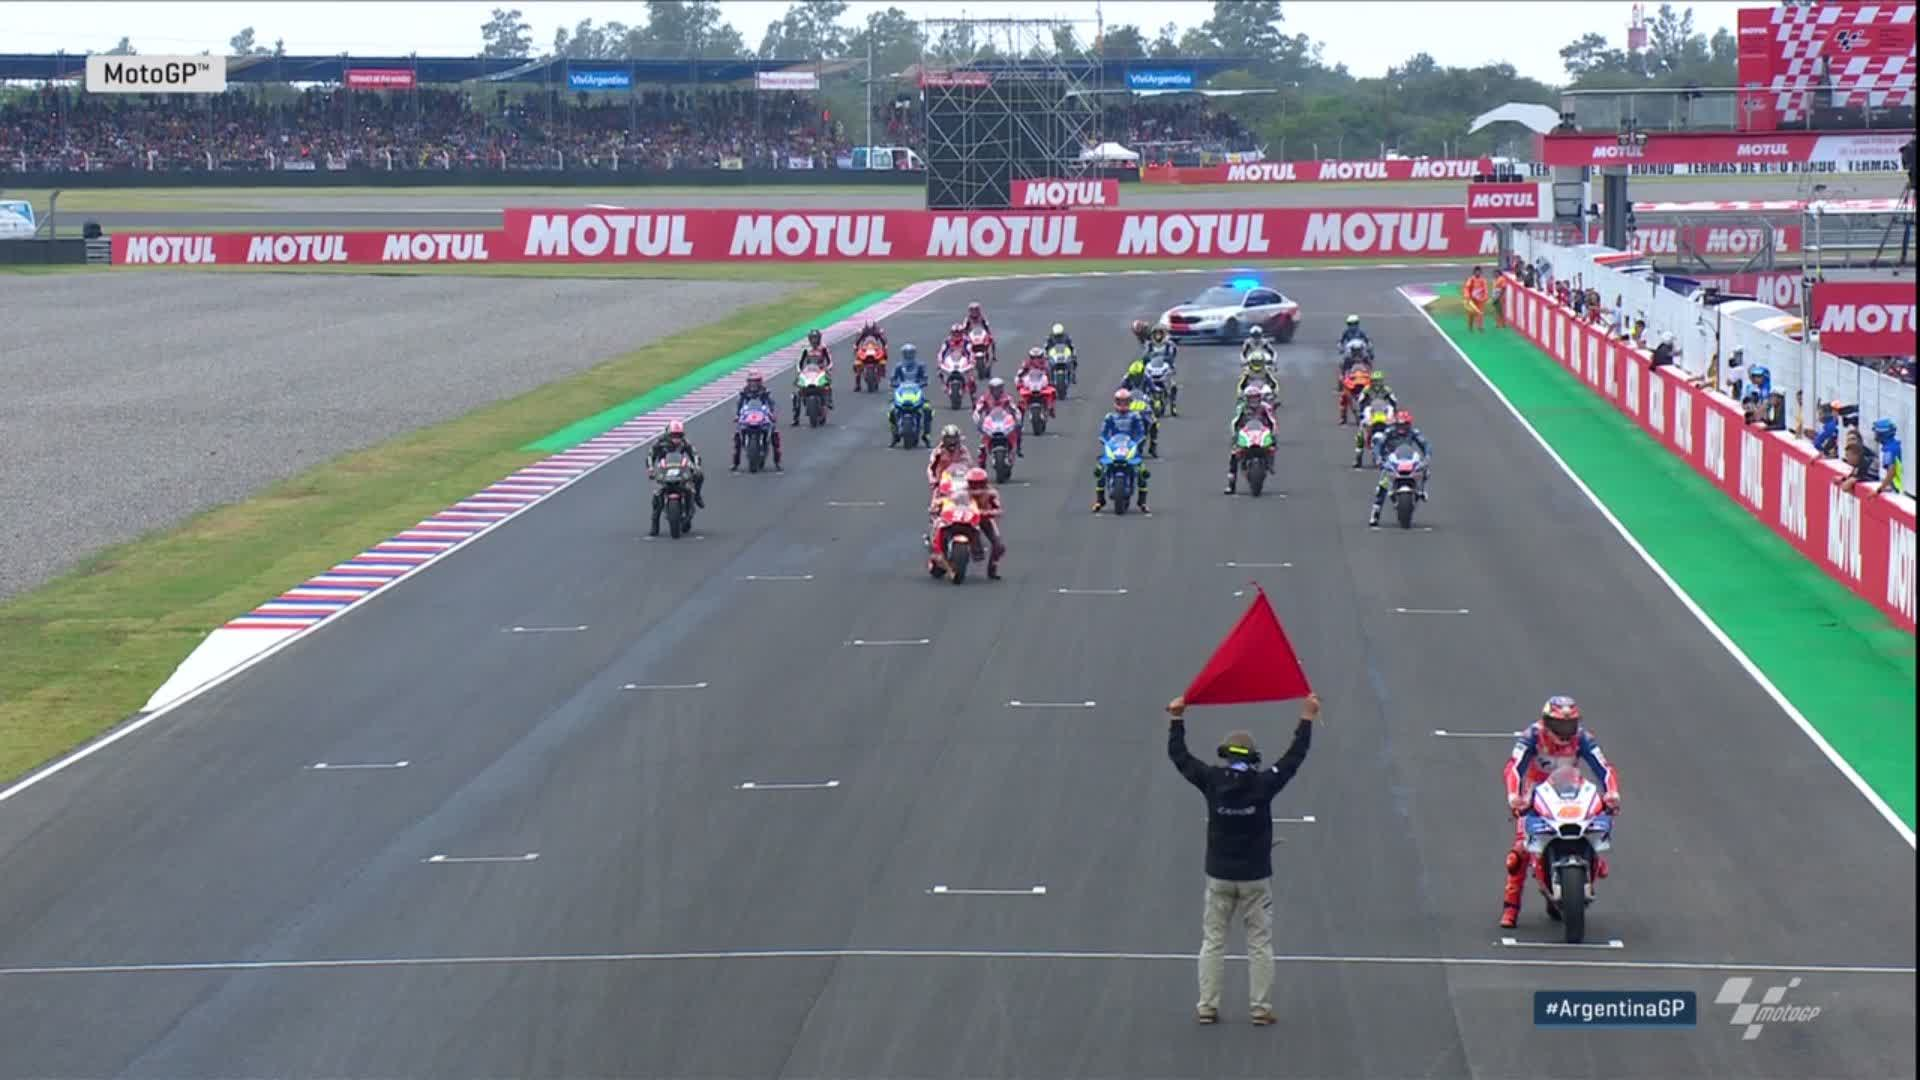 The 2018 #ArgentinaGP will live long in the memory ��  Relive all the drama on VideoPass �� https://t.co/QpCzw2rvU2 https://t.co/He4kbUMhLz